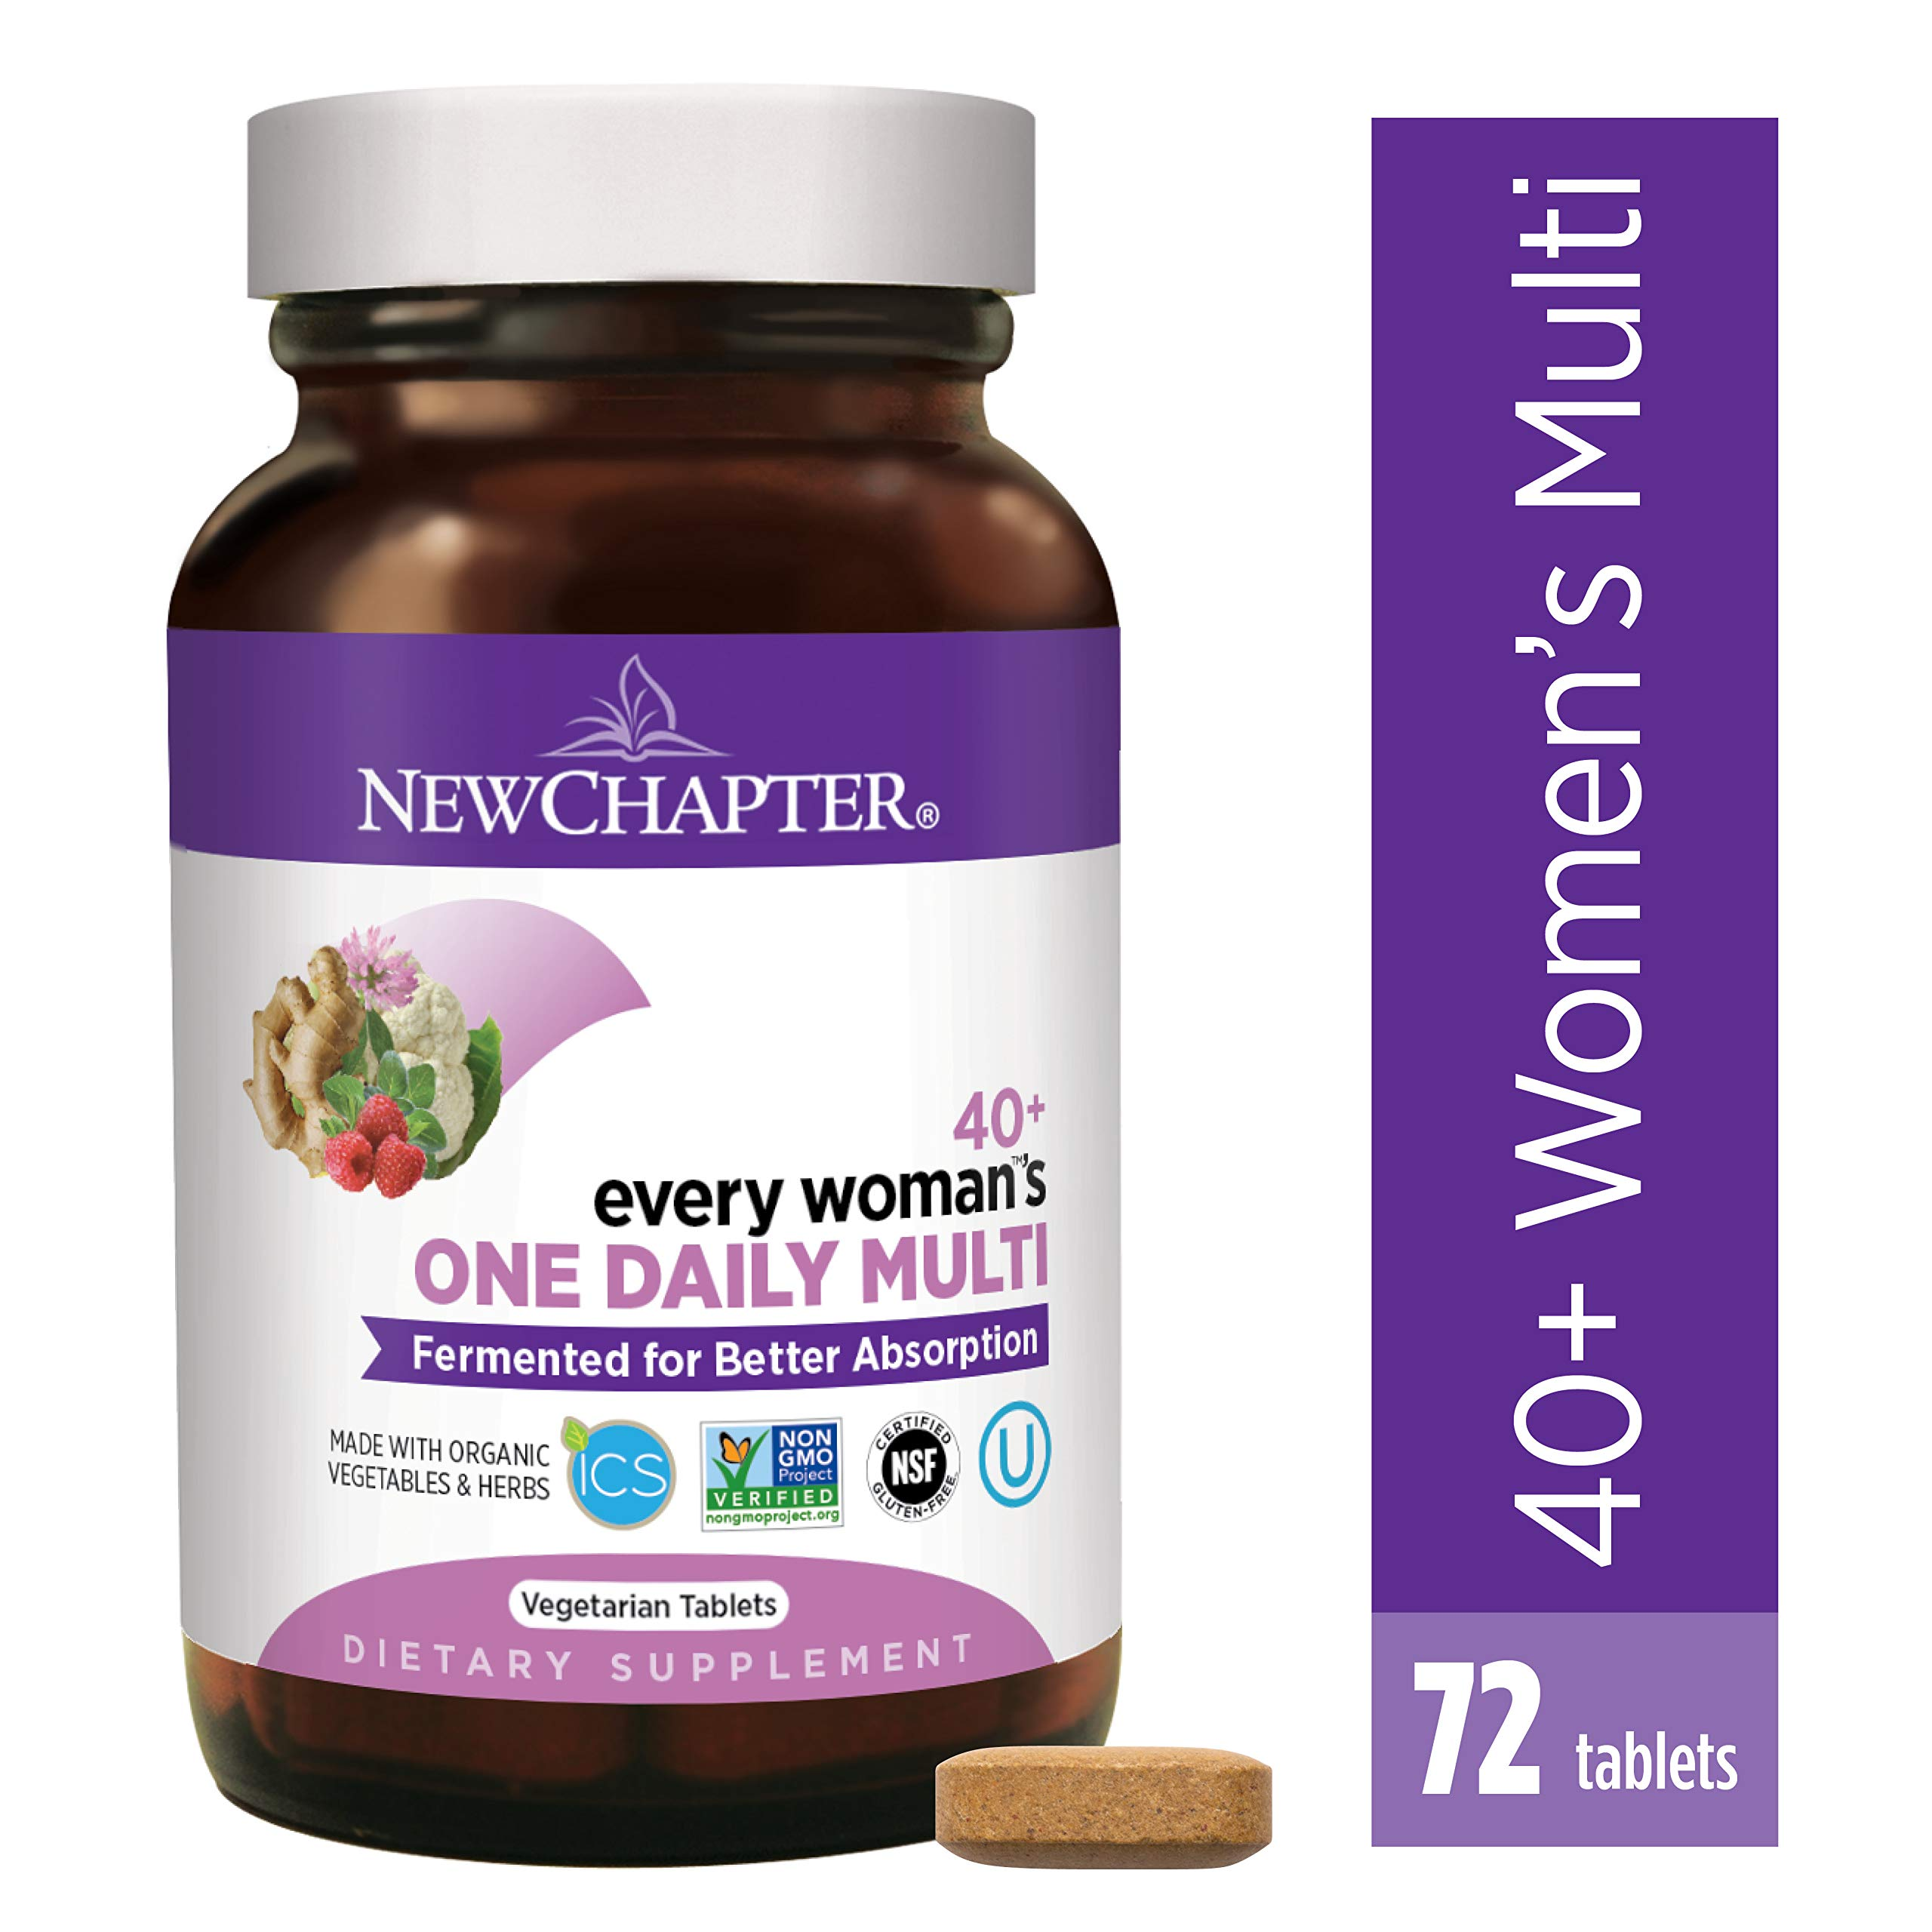 New Chapter Women's Multivitamin, Every Woman's One Daily 40+, Fermented with Probiotics + Vitamin D3 + B Vitamins + Organic Non-GMO Ingredients - 72 ct (Packaging May Vary) by New Chapter